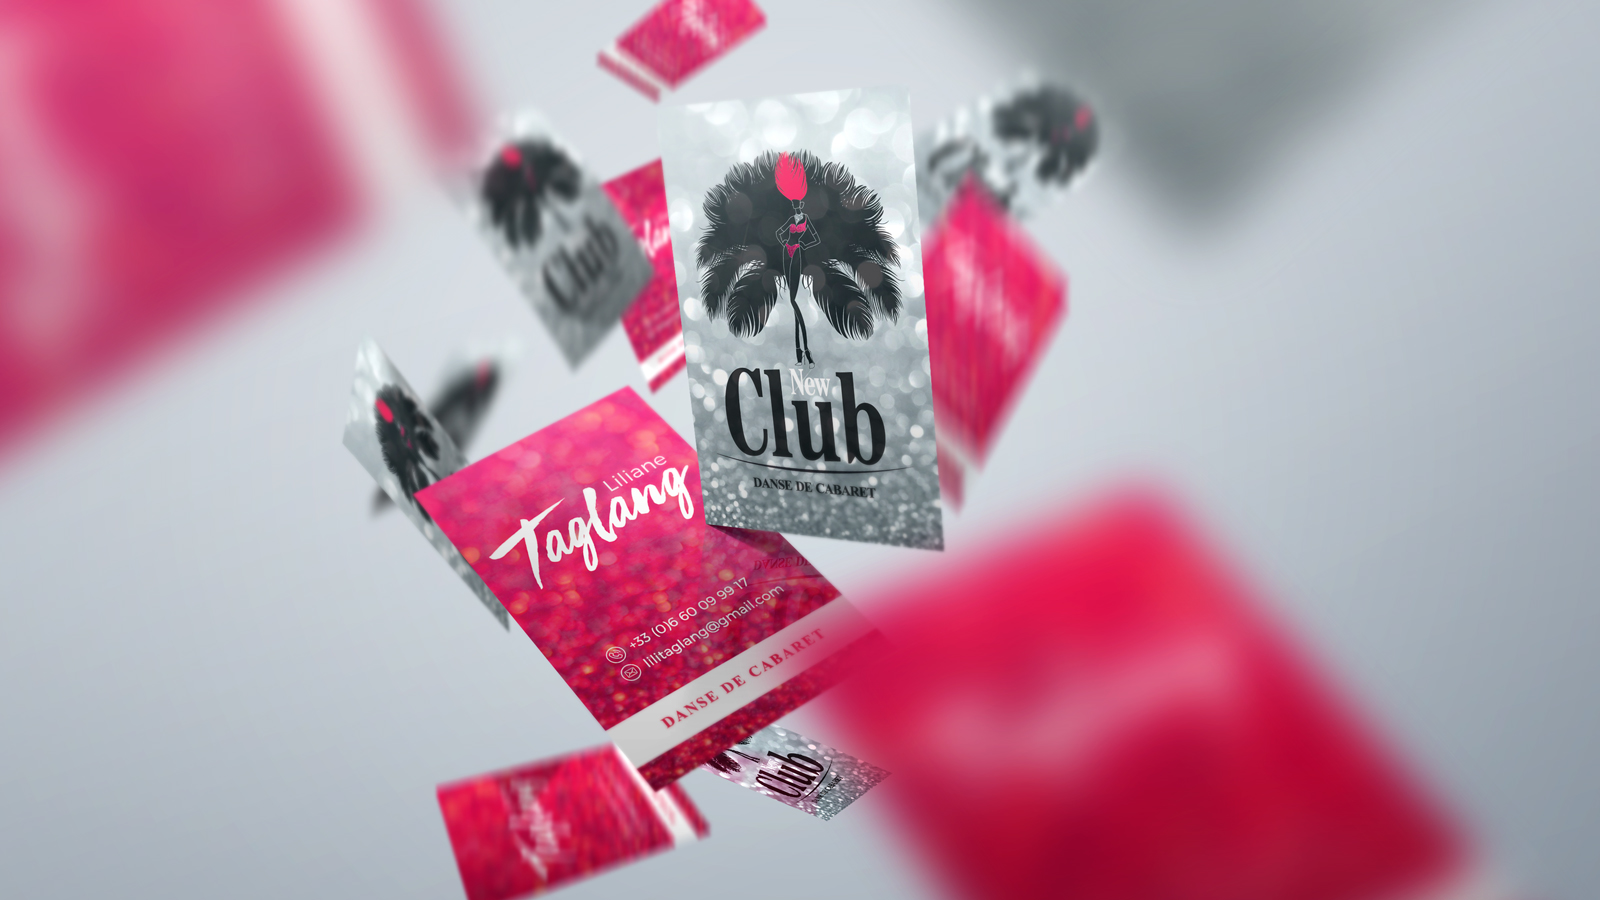 Carte de visite du Club de Dance New Club